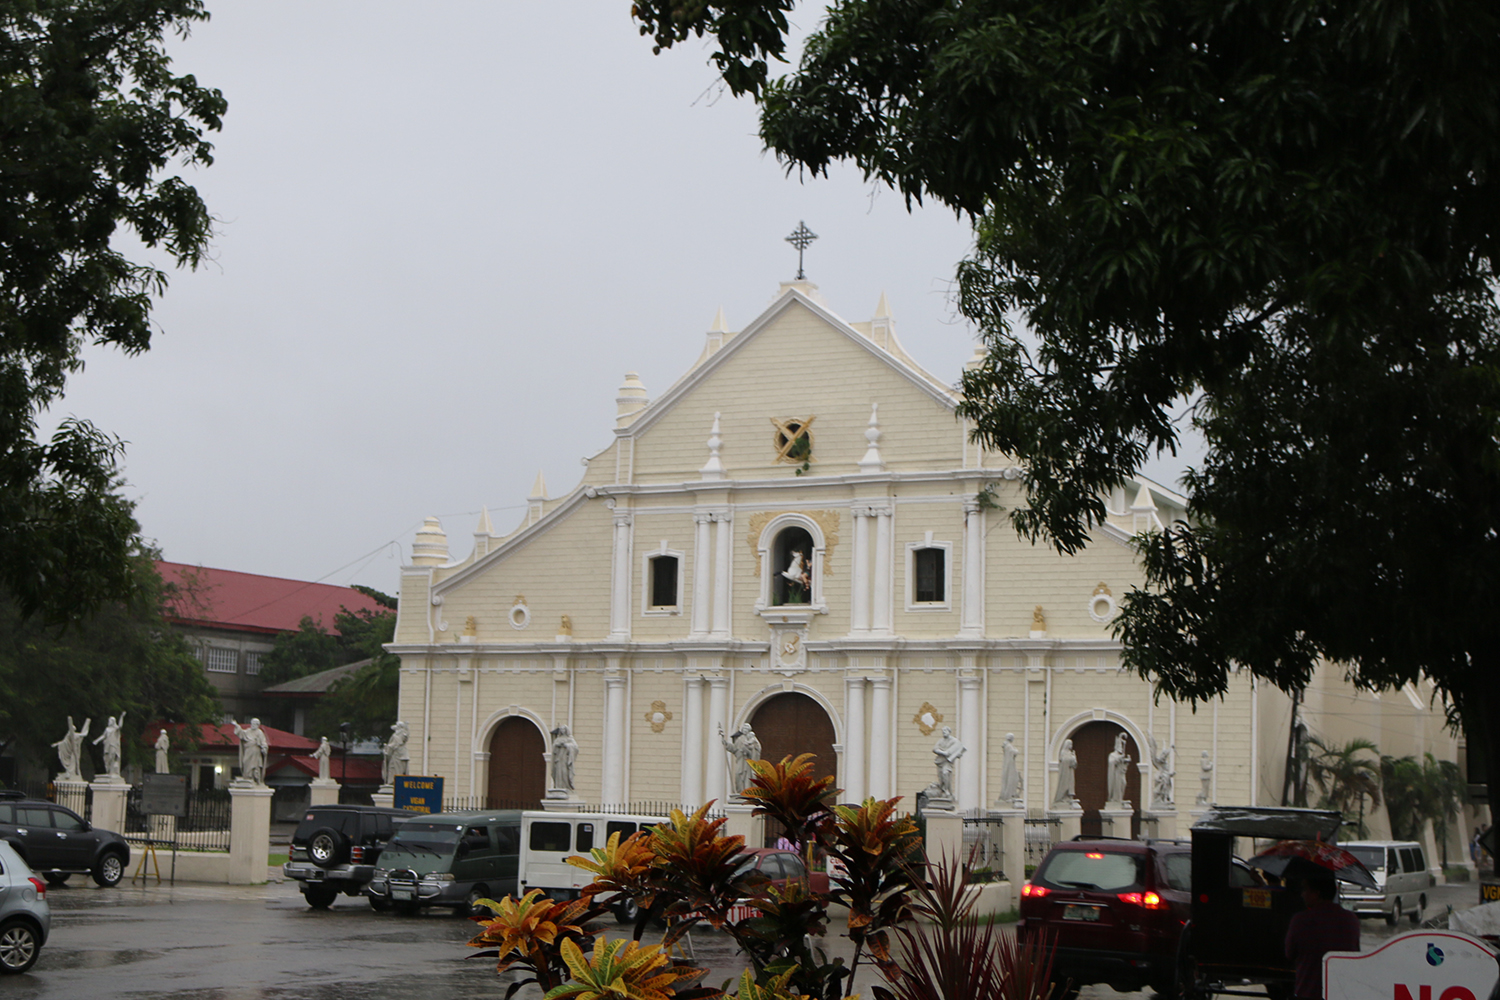 travel Vigan Ilocos Tour Sur Philippines tour tourism St Pauls Metropolitan Cathedral